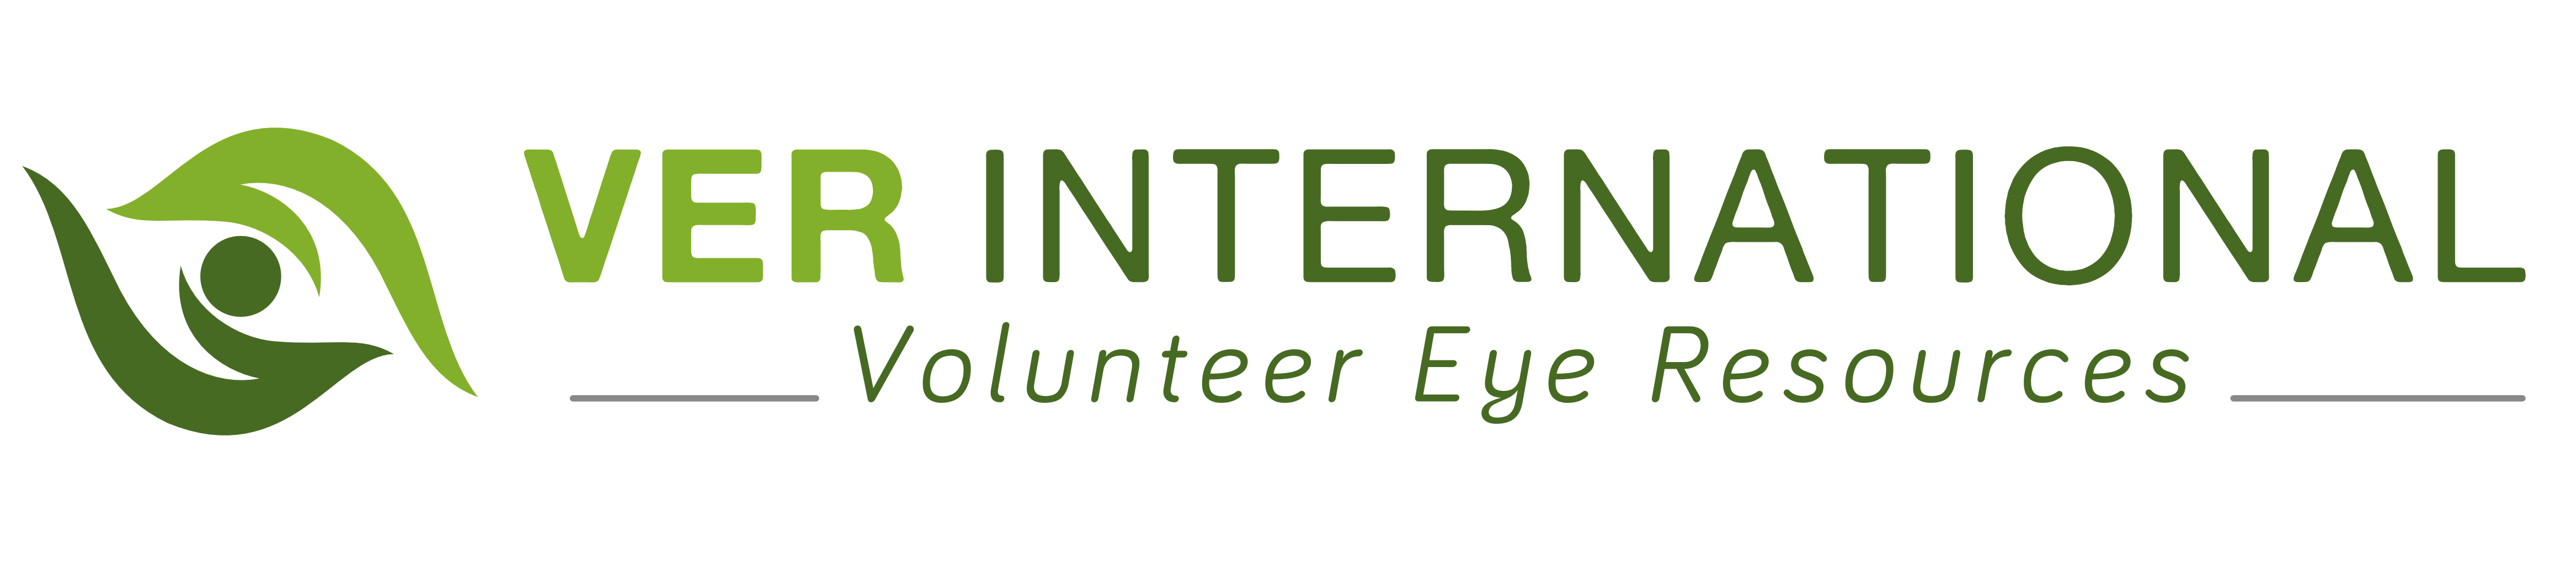 Volunteer Eye Resources International